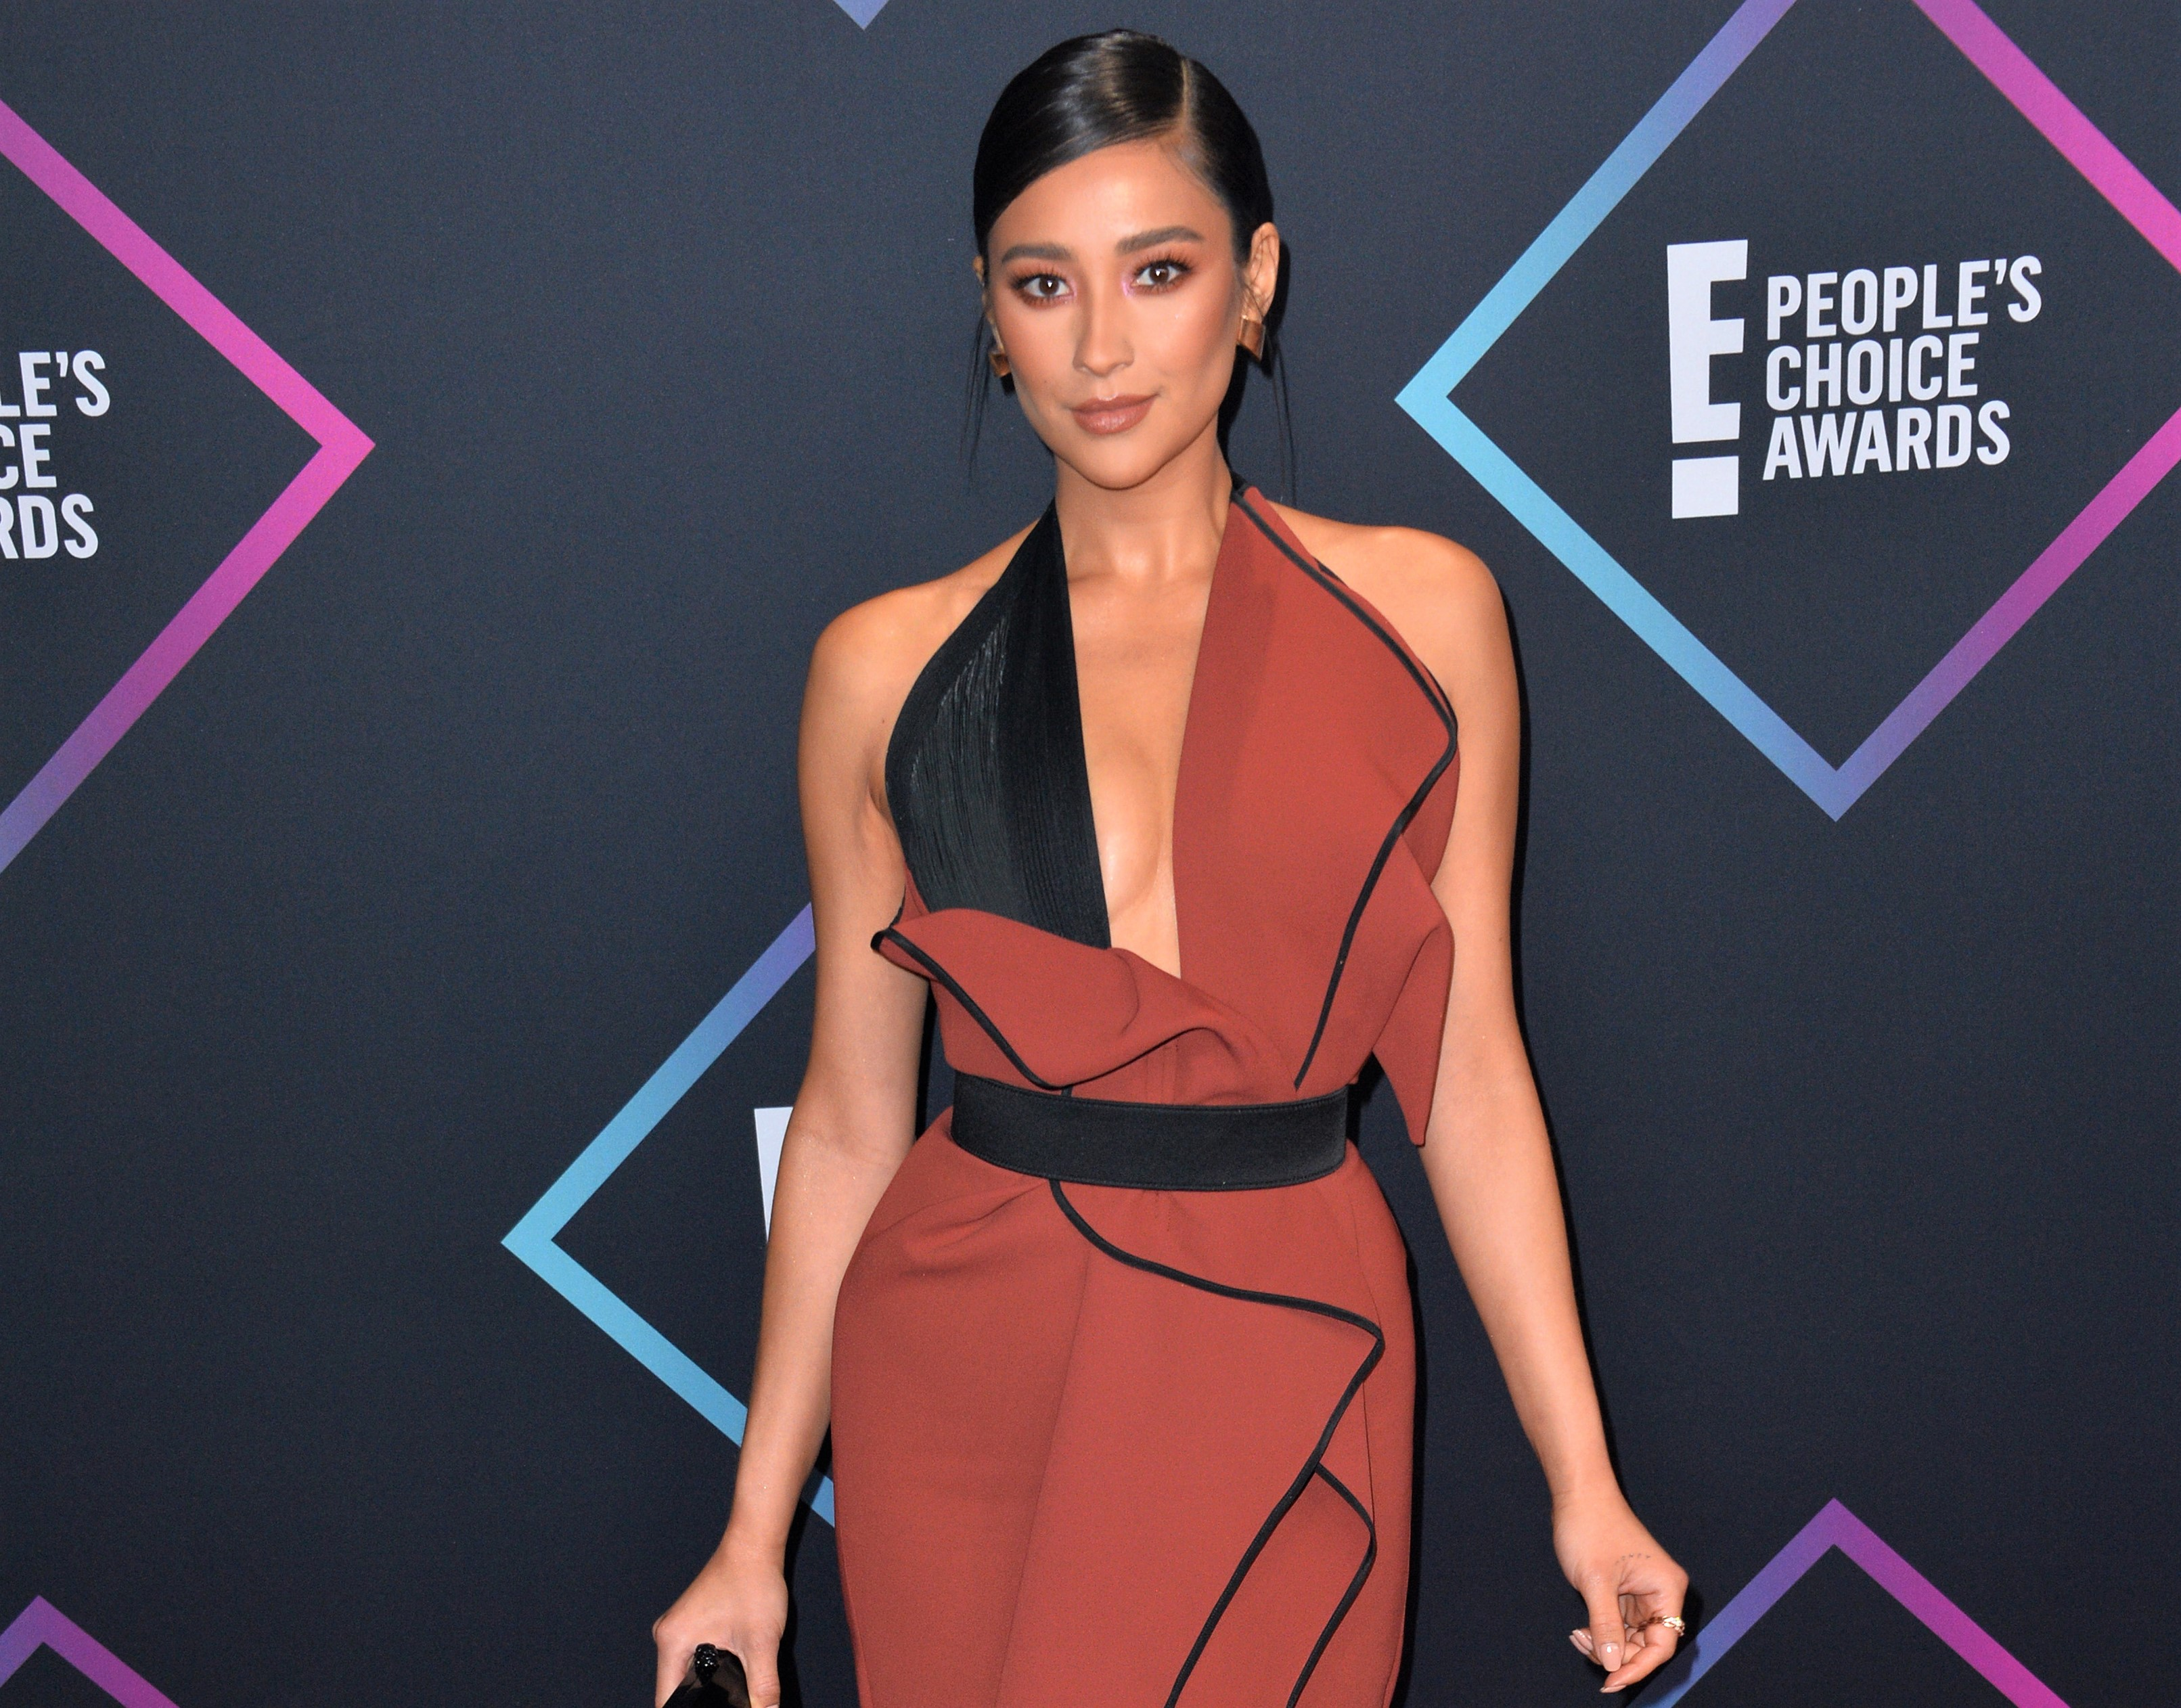 Shay Mitchell Reveals She Suffered Miscarriage and Lost 'Child of My Hopes and Dreams' in 2018